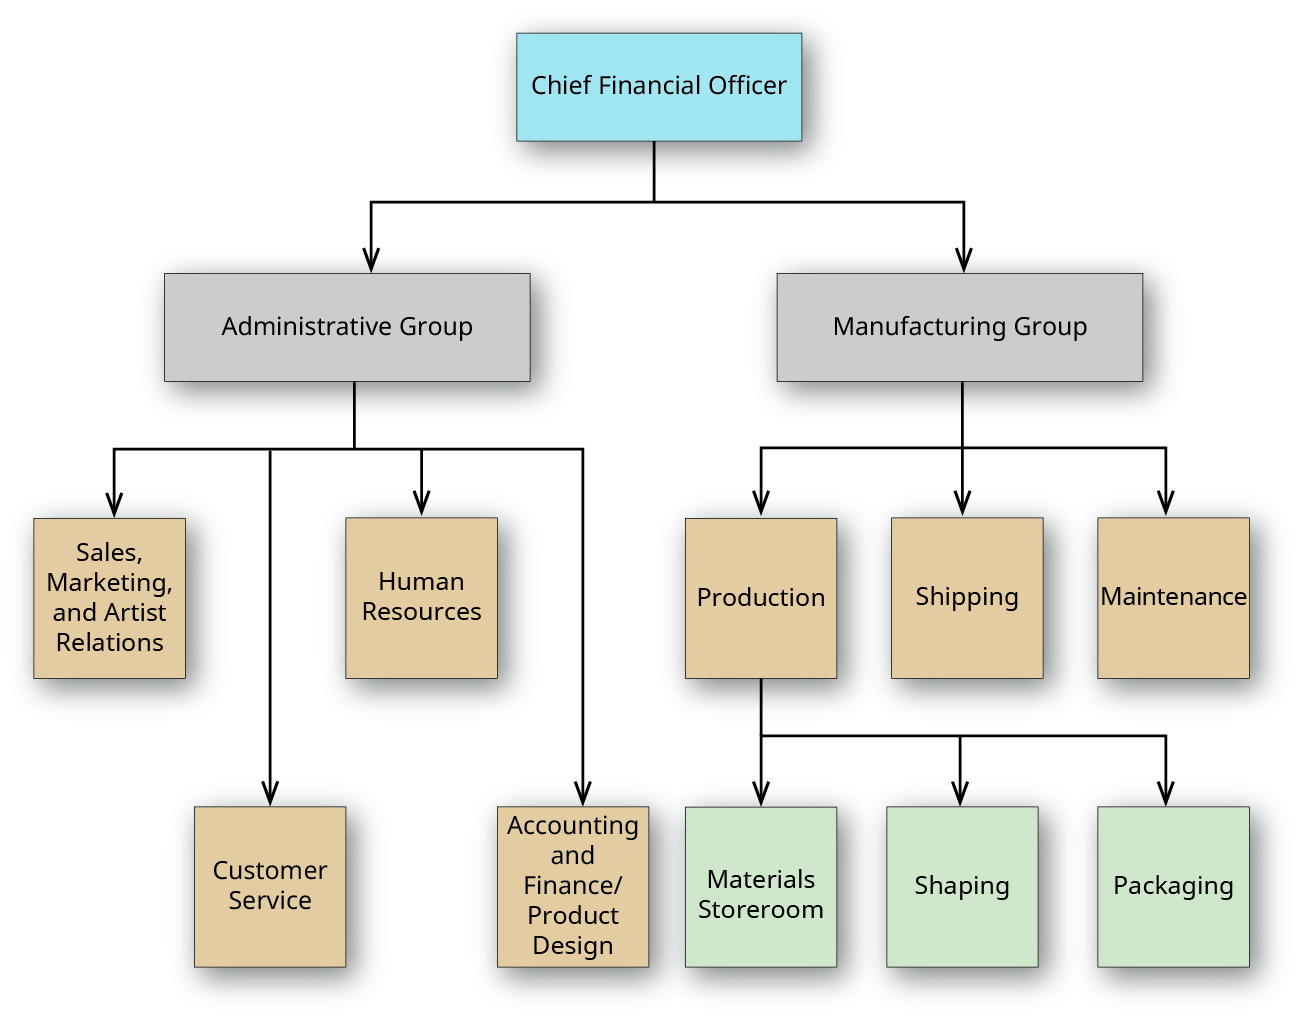 Box labeled Chief Financial Officer at the top points to two boxes just below labeled Administrative Group and Manufacturing Group. The Administrative Group box points to four boxes below that: Sales, Marketing, and Artist Relations; Customer Service; Human Resources; and Accounting and Finance/Product Design. The Manufacturing Group box points to three boxes below it: Production, Shipping, and Maintenance. The Production box points to three boxes below it: Materials Storeroom, Shaping, and Packaging.